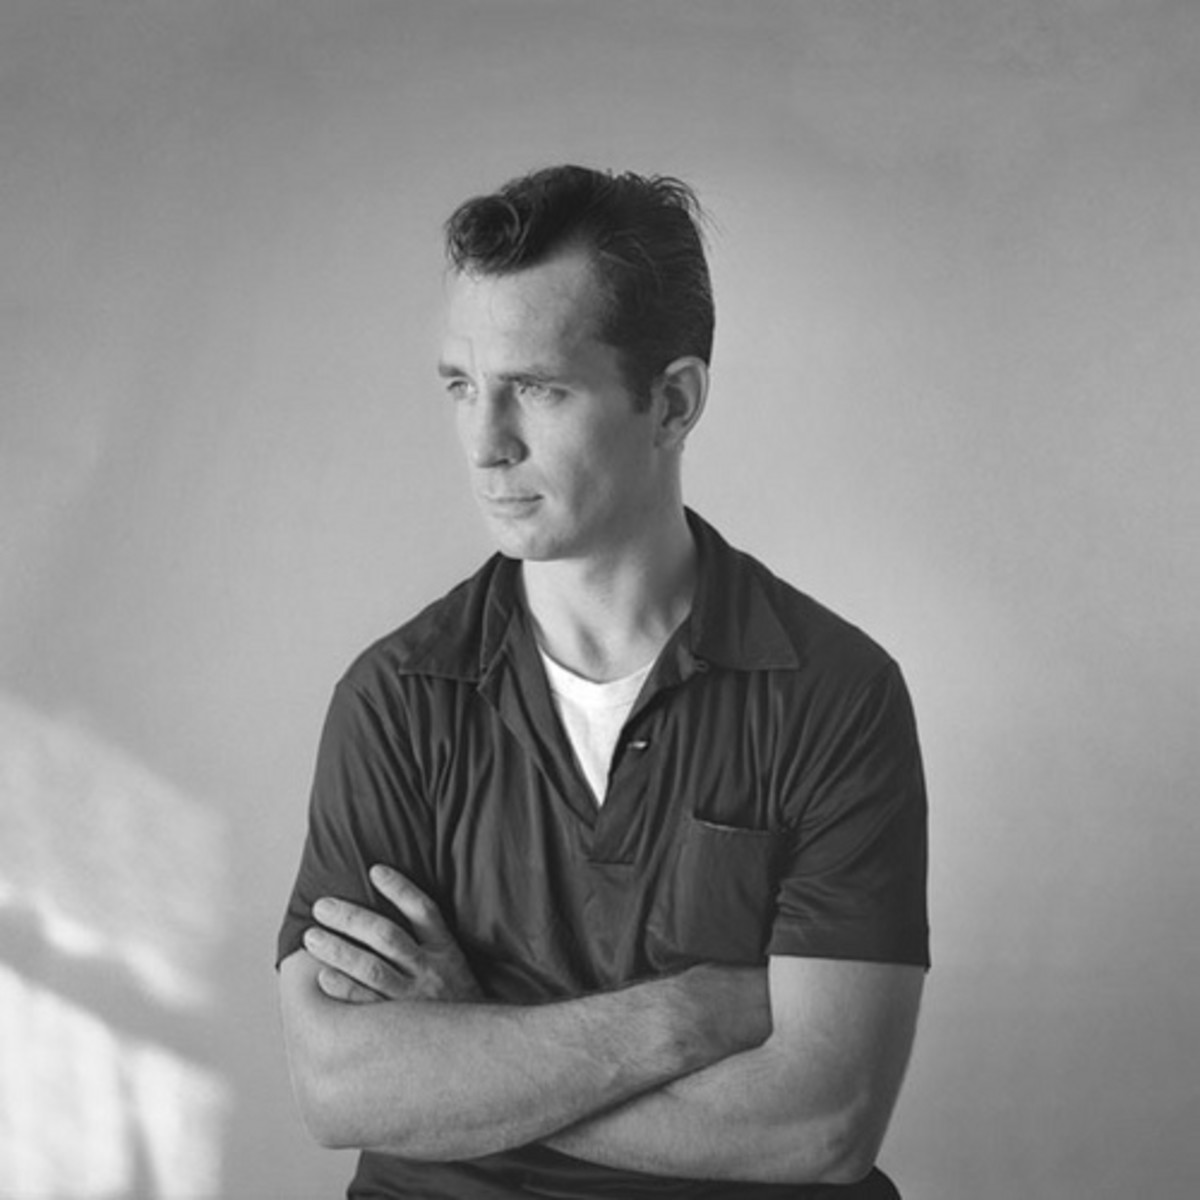 On The Road : Jack Kerouac's Classic Beat Novel